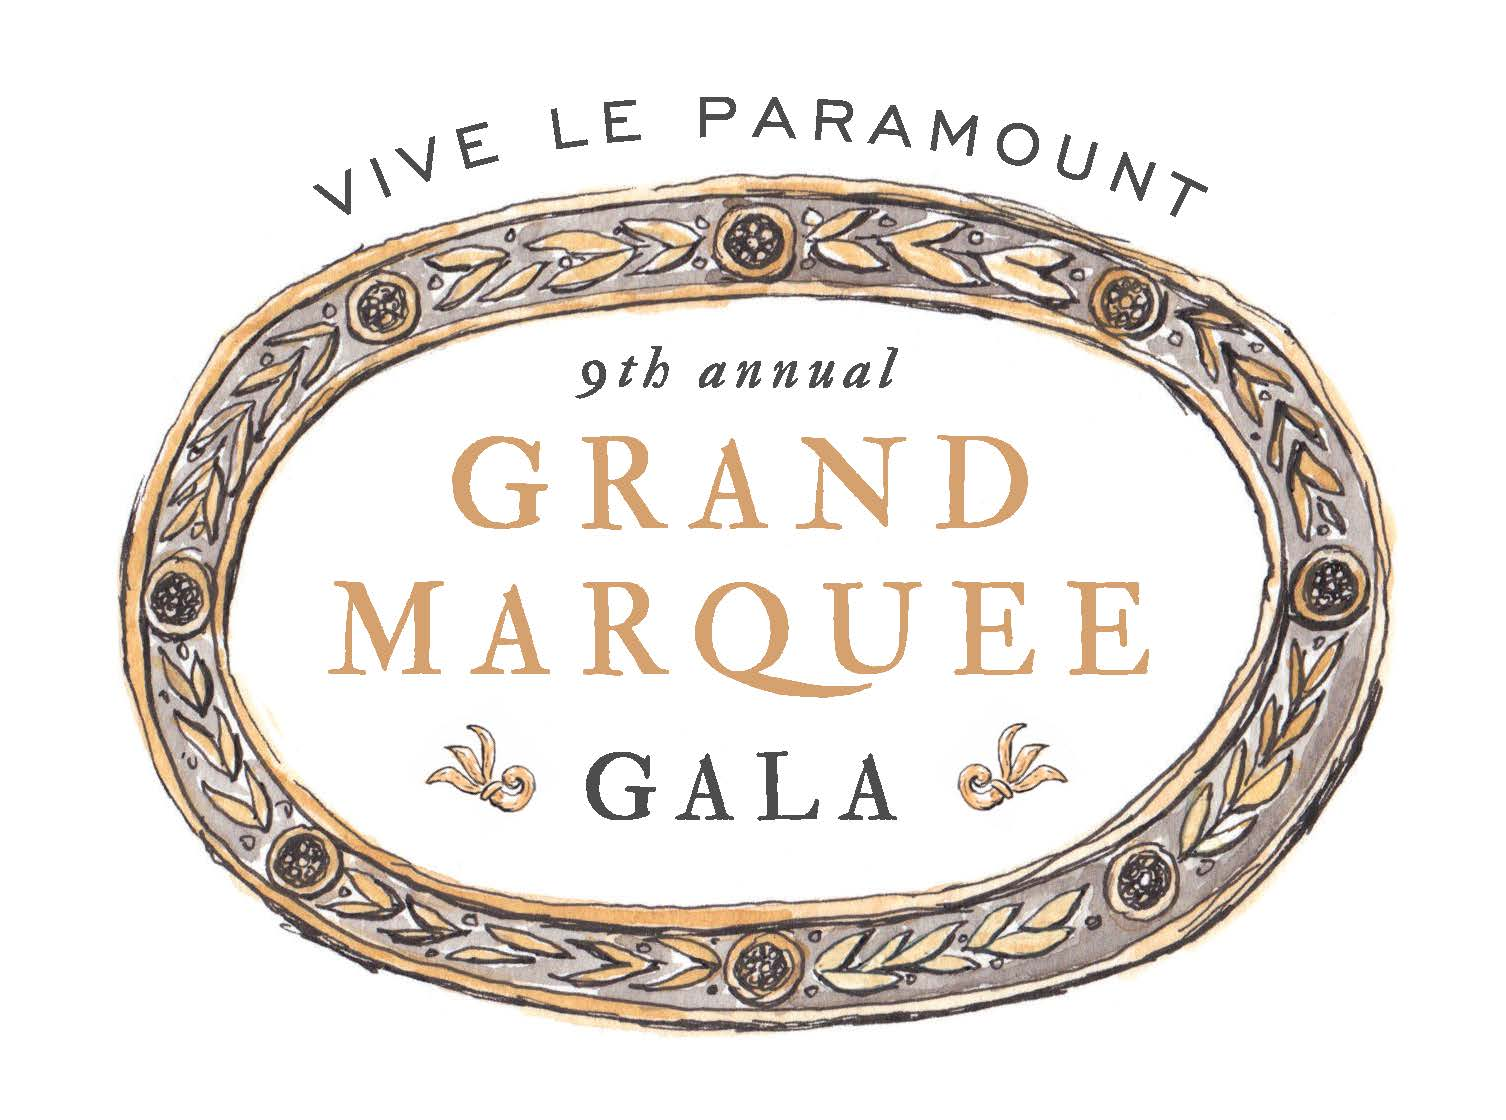 Paramount Presents: 9th Annual Grand Marquee Gala